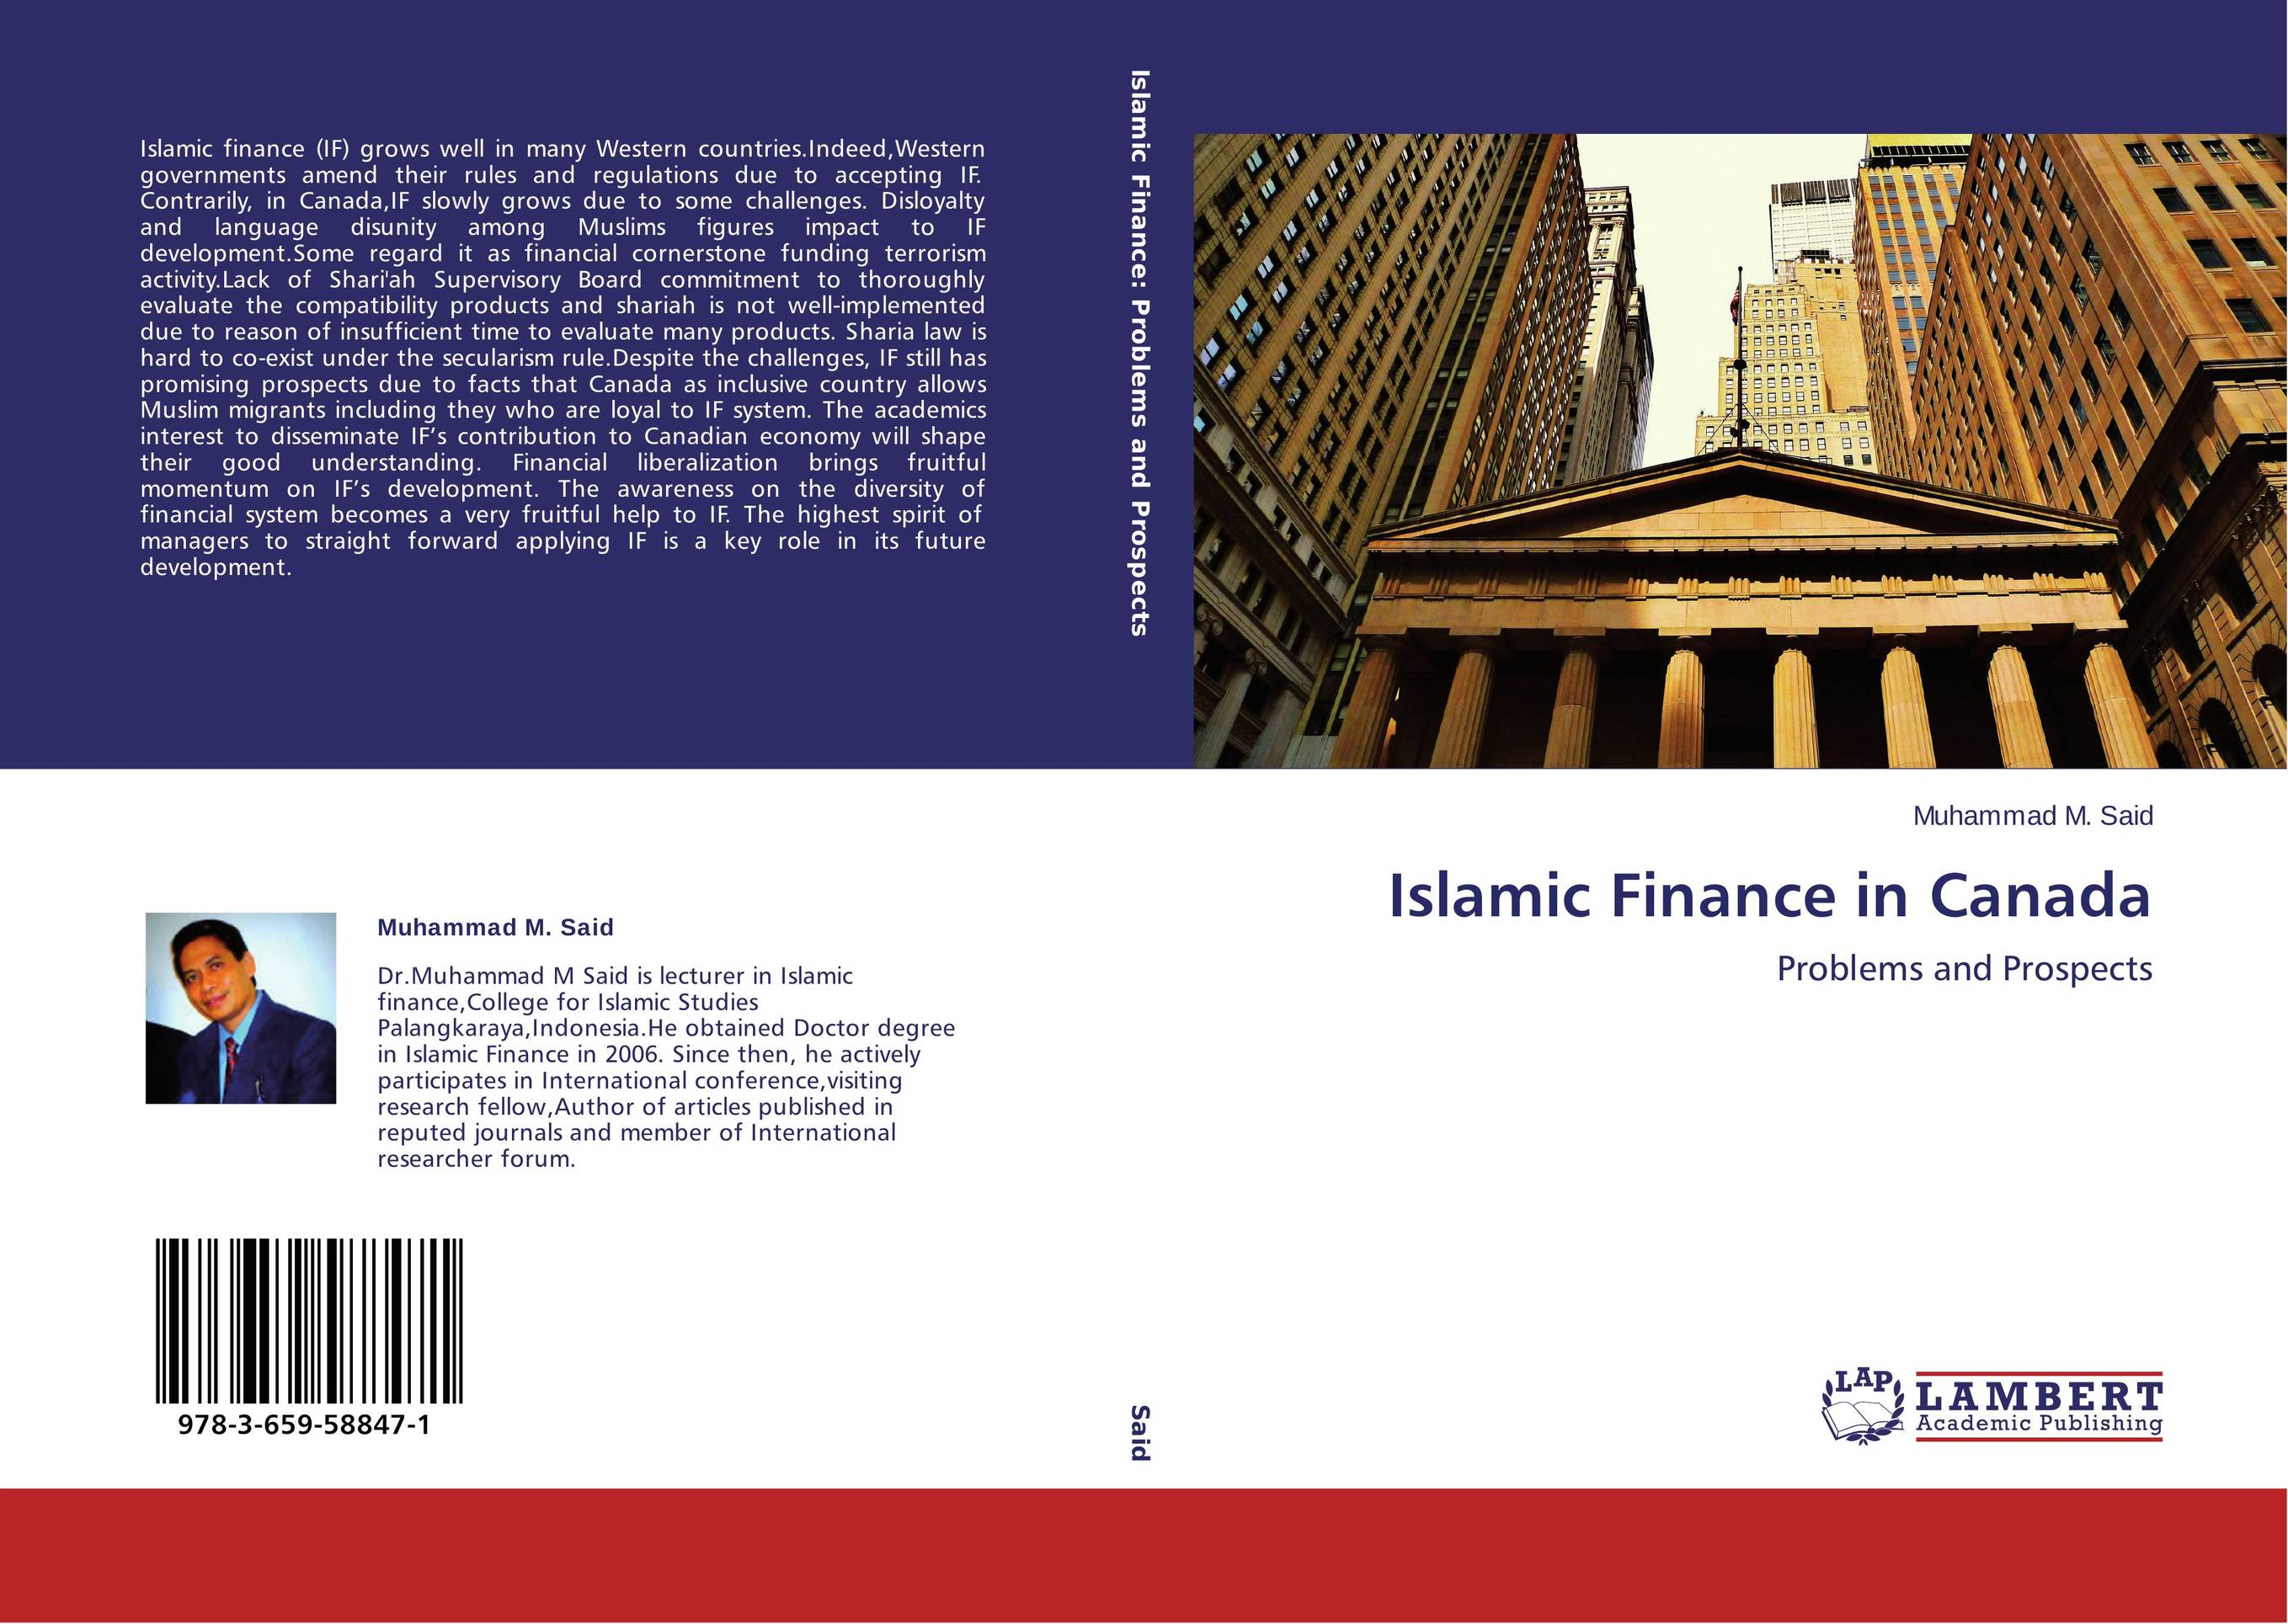 a study on islamic financing in Welcome to the institute of islamic studies in its academic programmes, the institute of islamic studies focuses on the religion of islam, on the history and civilization of the islamic world, and on the dynamics of contemporary muslim societies.